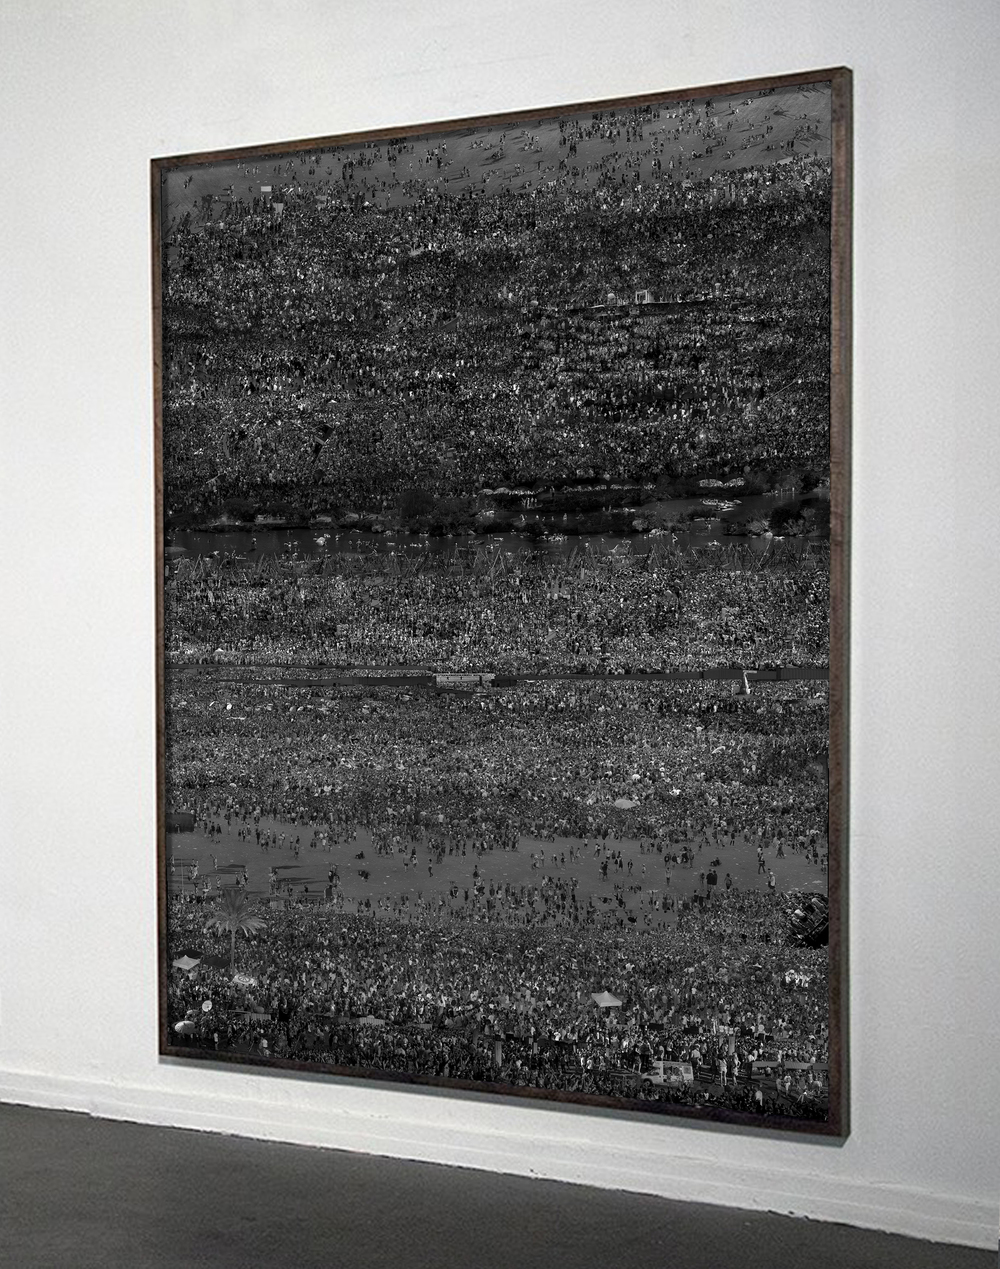 Untitled (Portugal, Rumania, London, ) Digital C Print. 71X100 inches